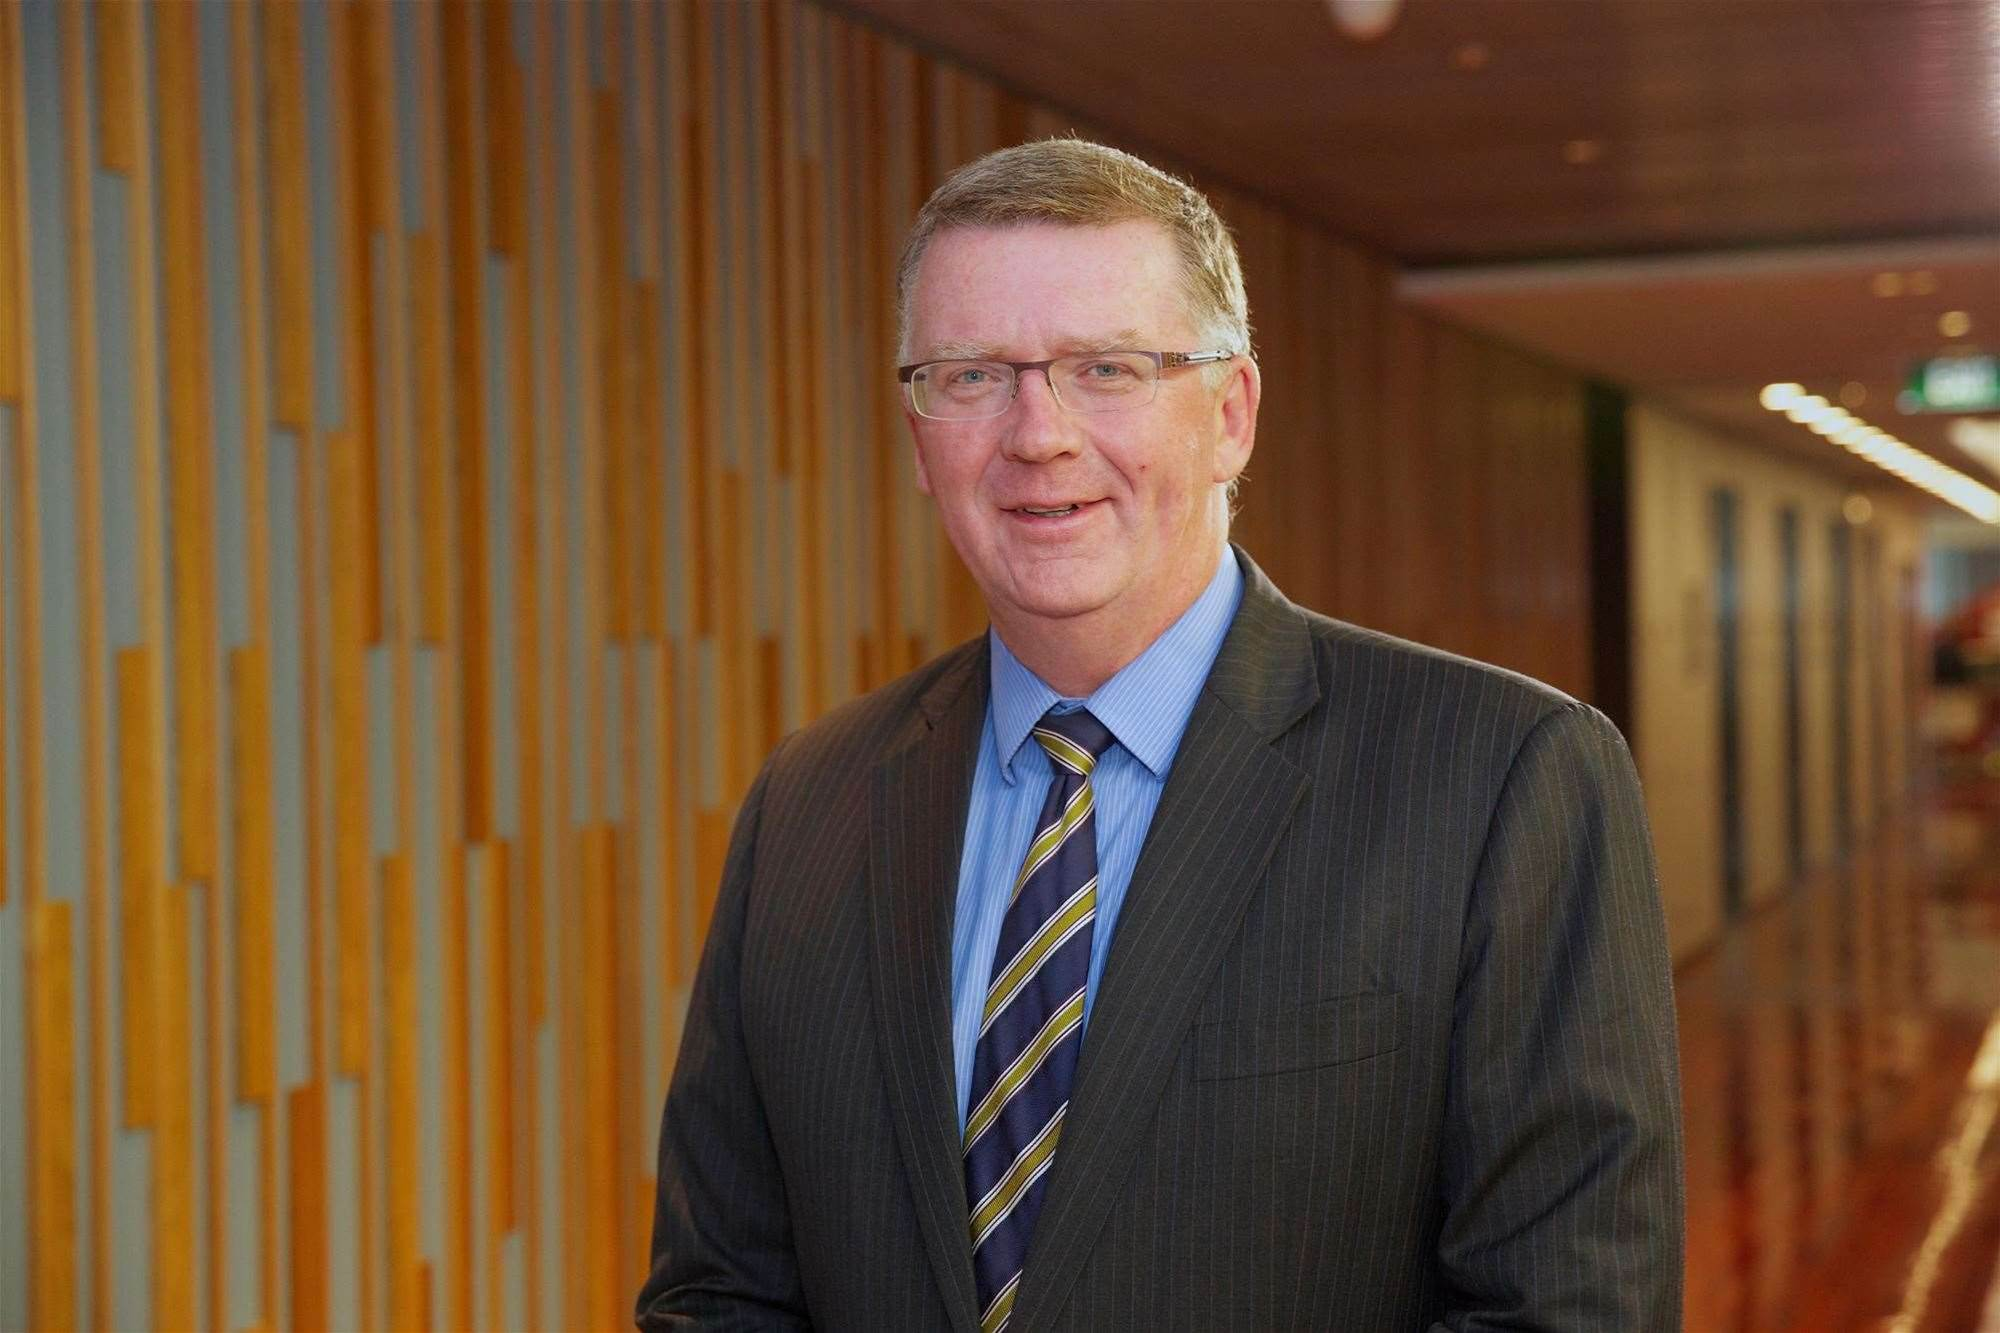 Westpac CIO Dave Curran to retire